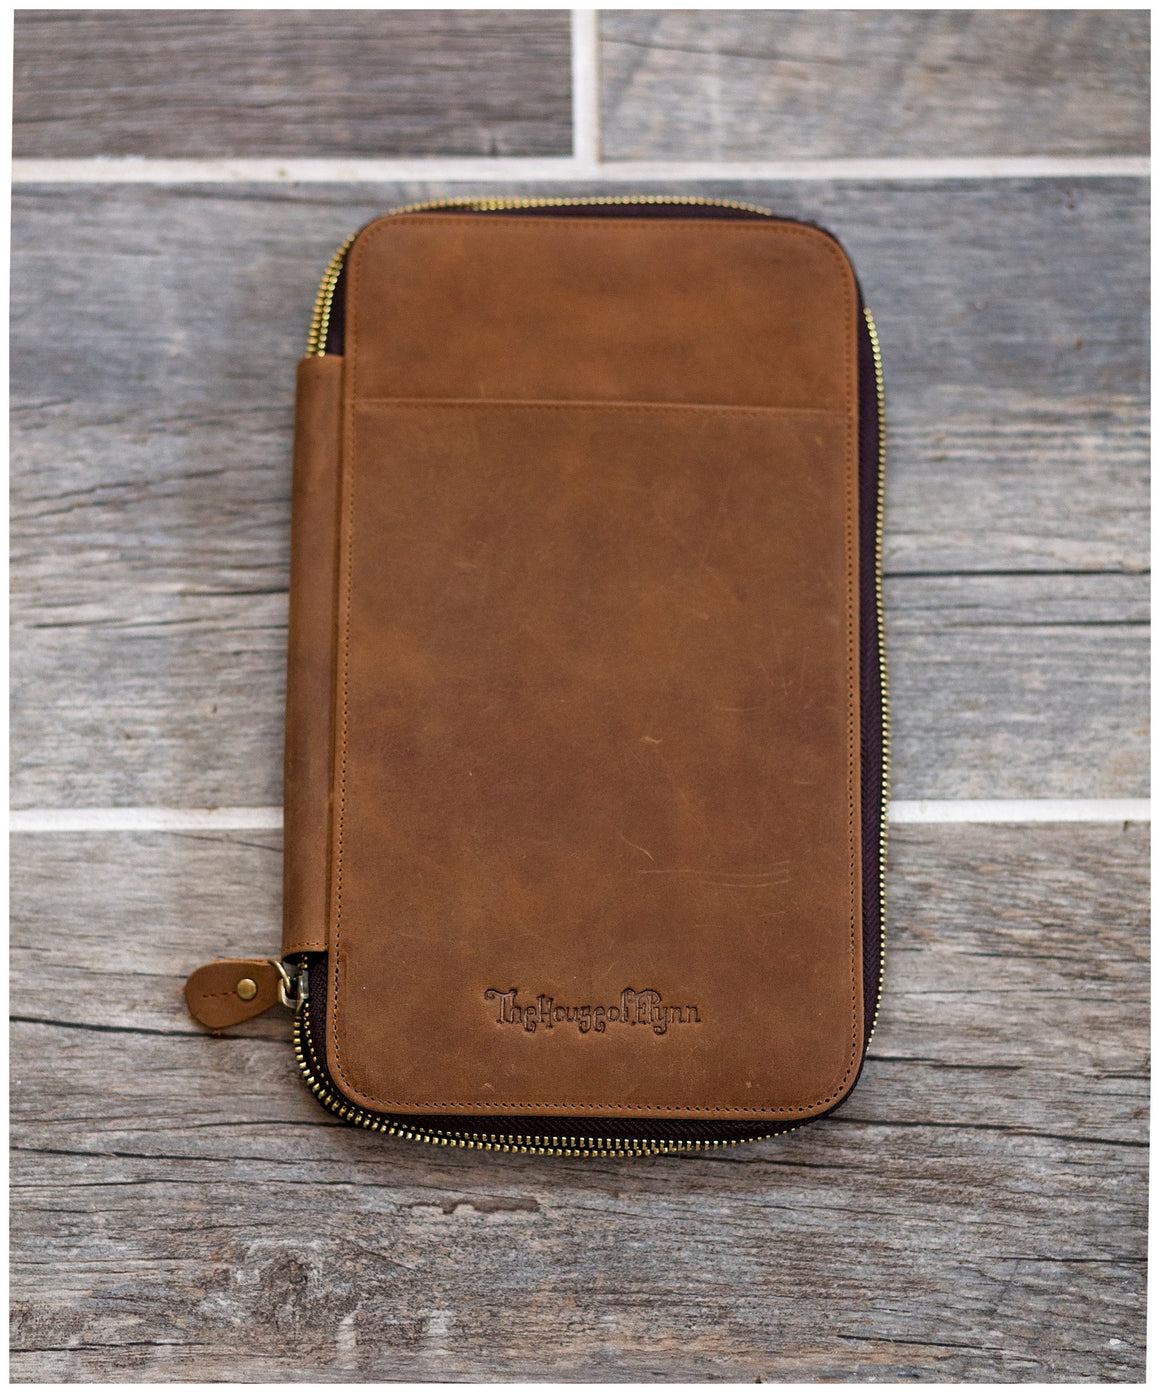 Vintage Brown Leather Traveler's Wallet